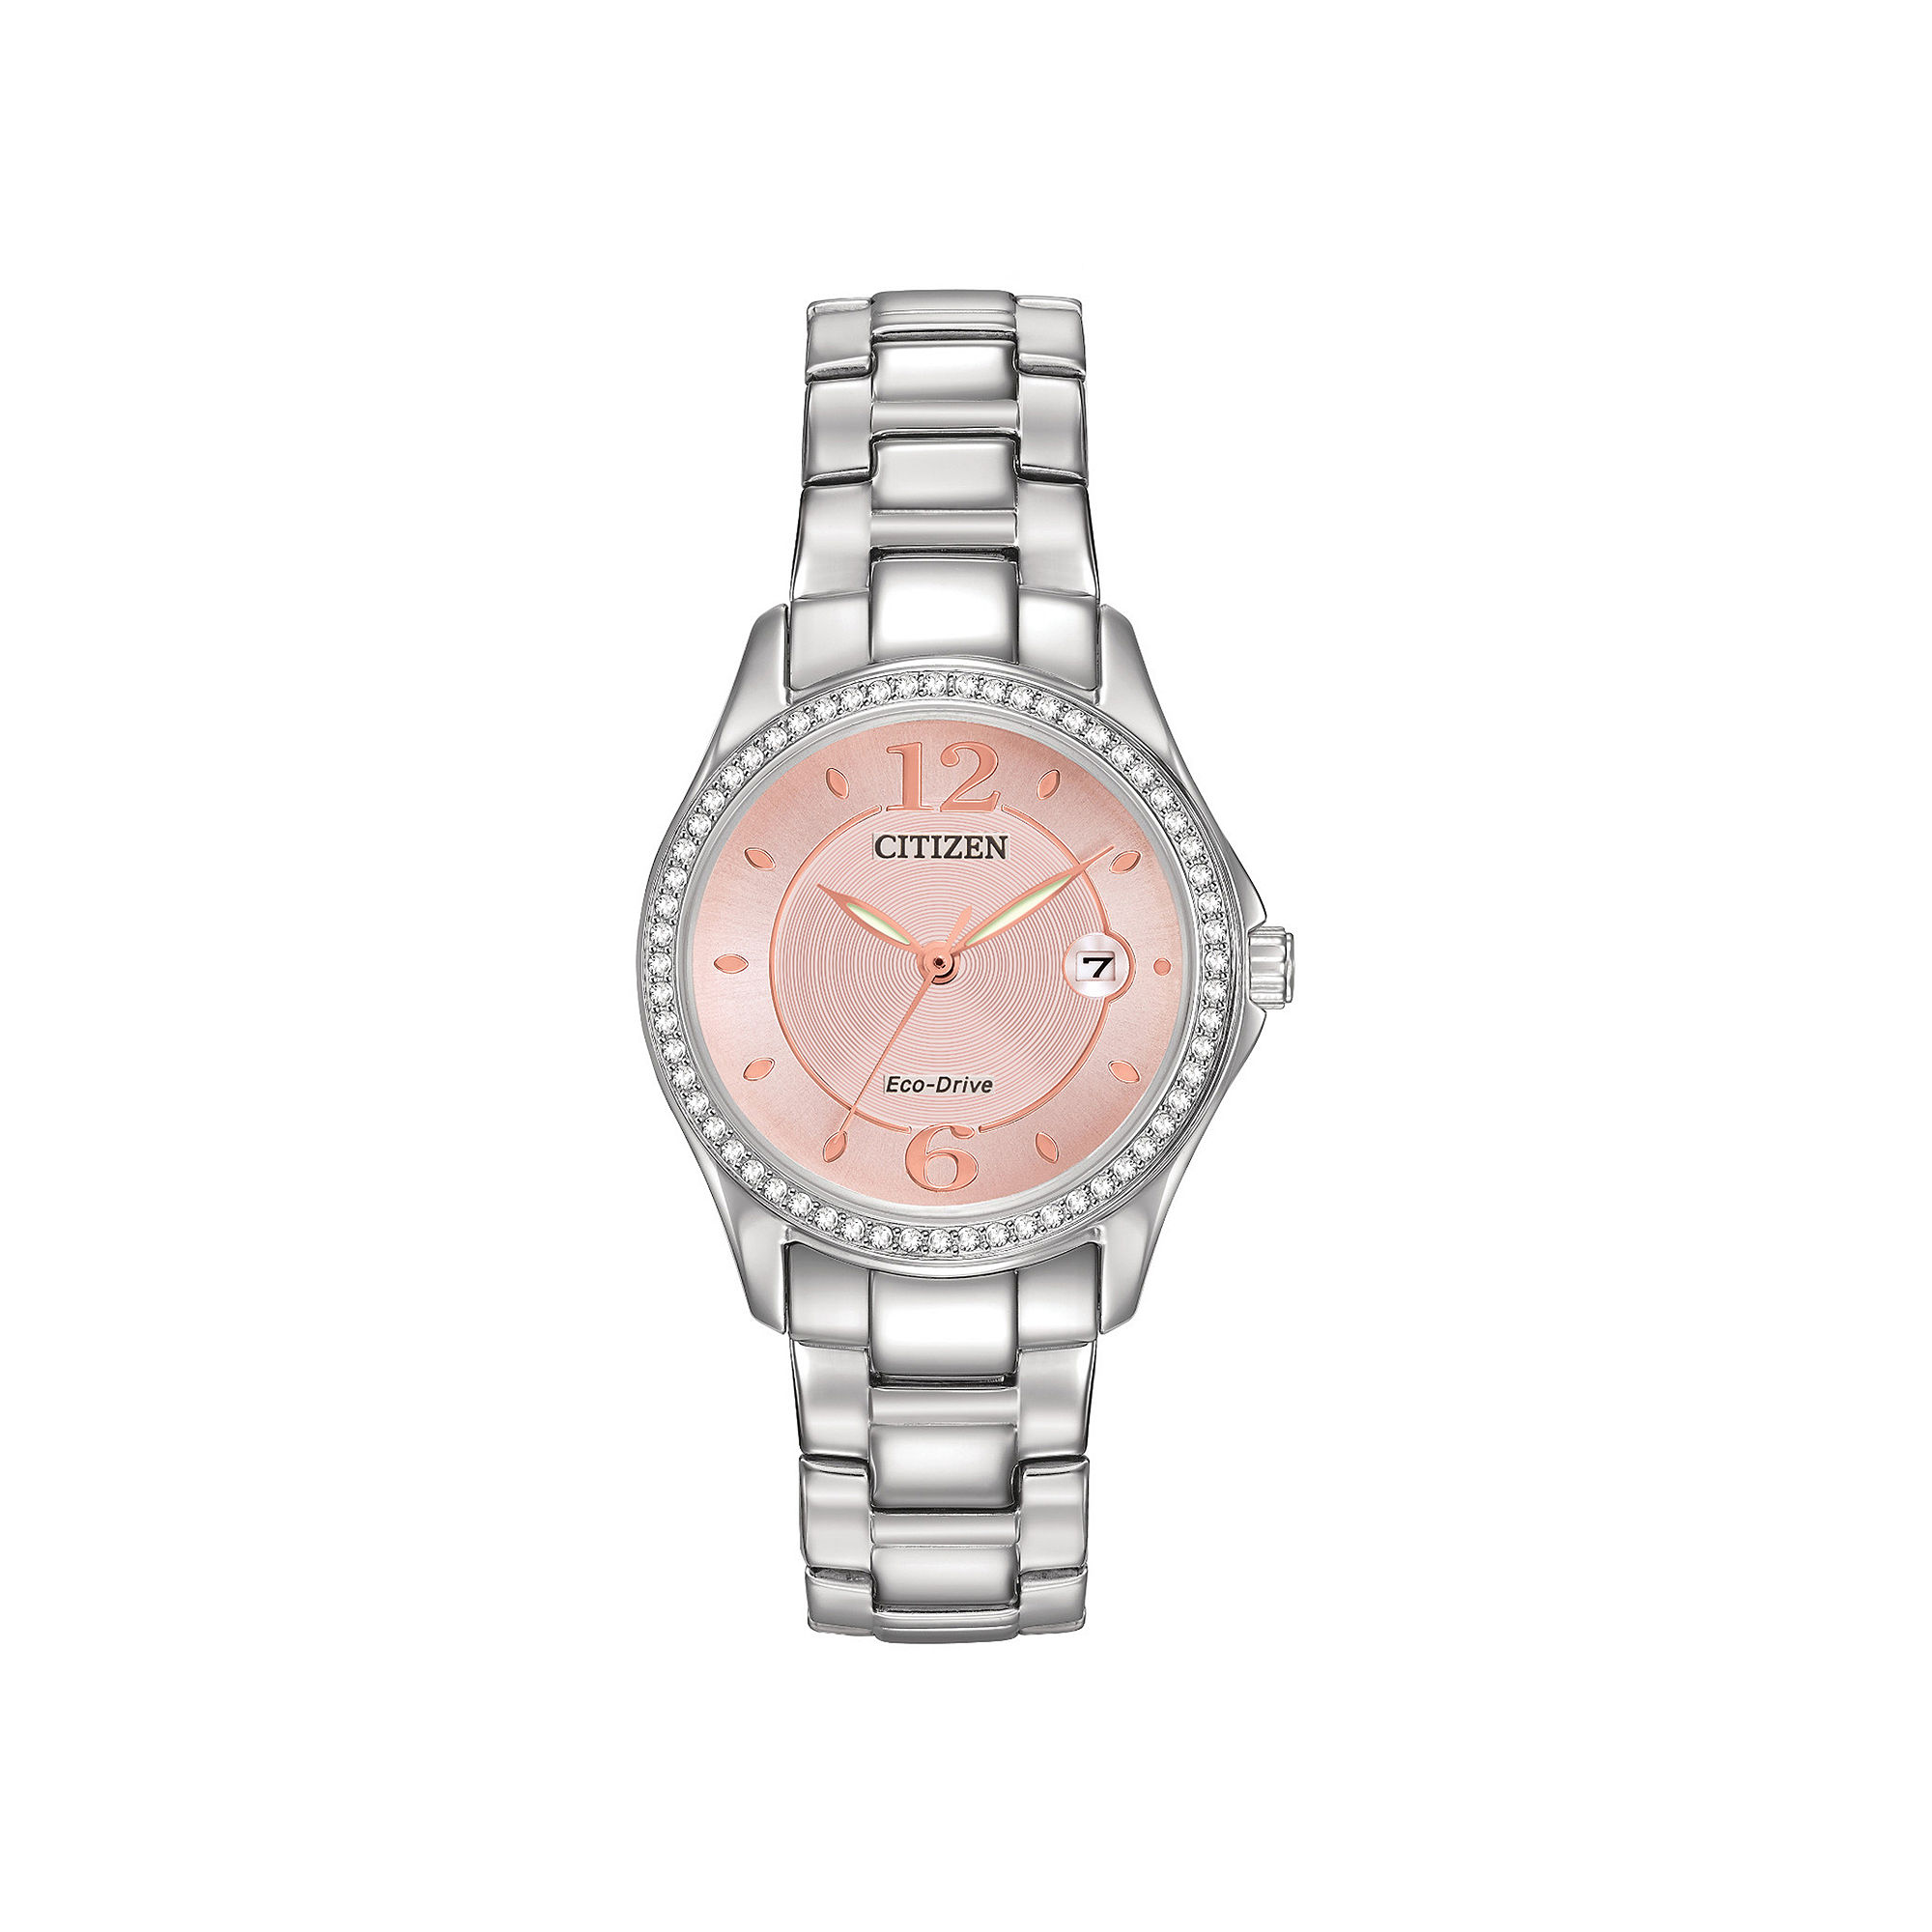 Eco-Drive watch for women - Pink dial with mineral crystal